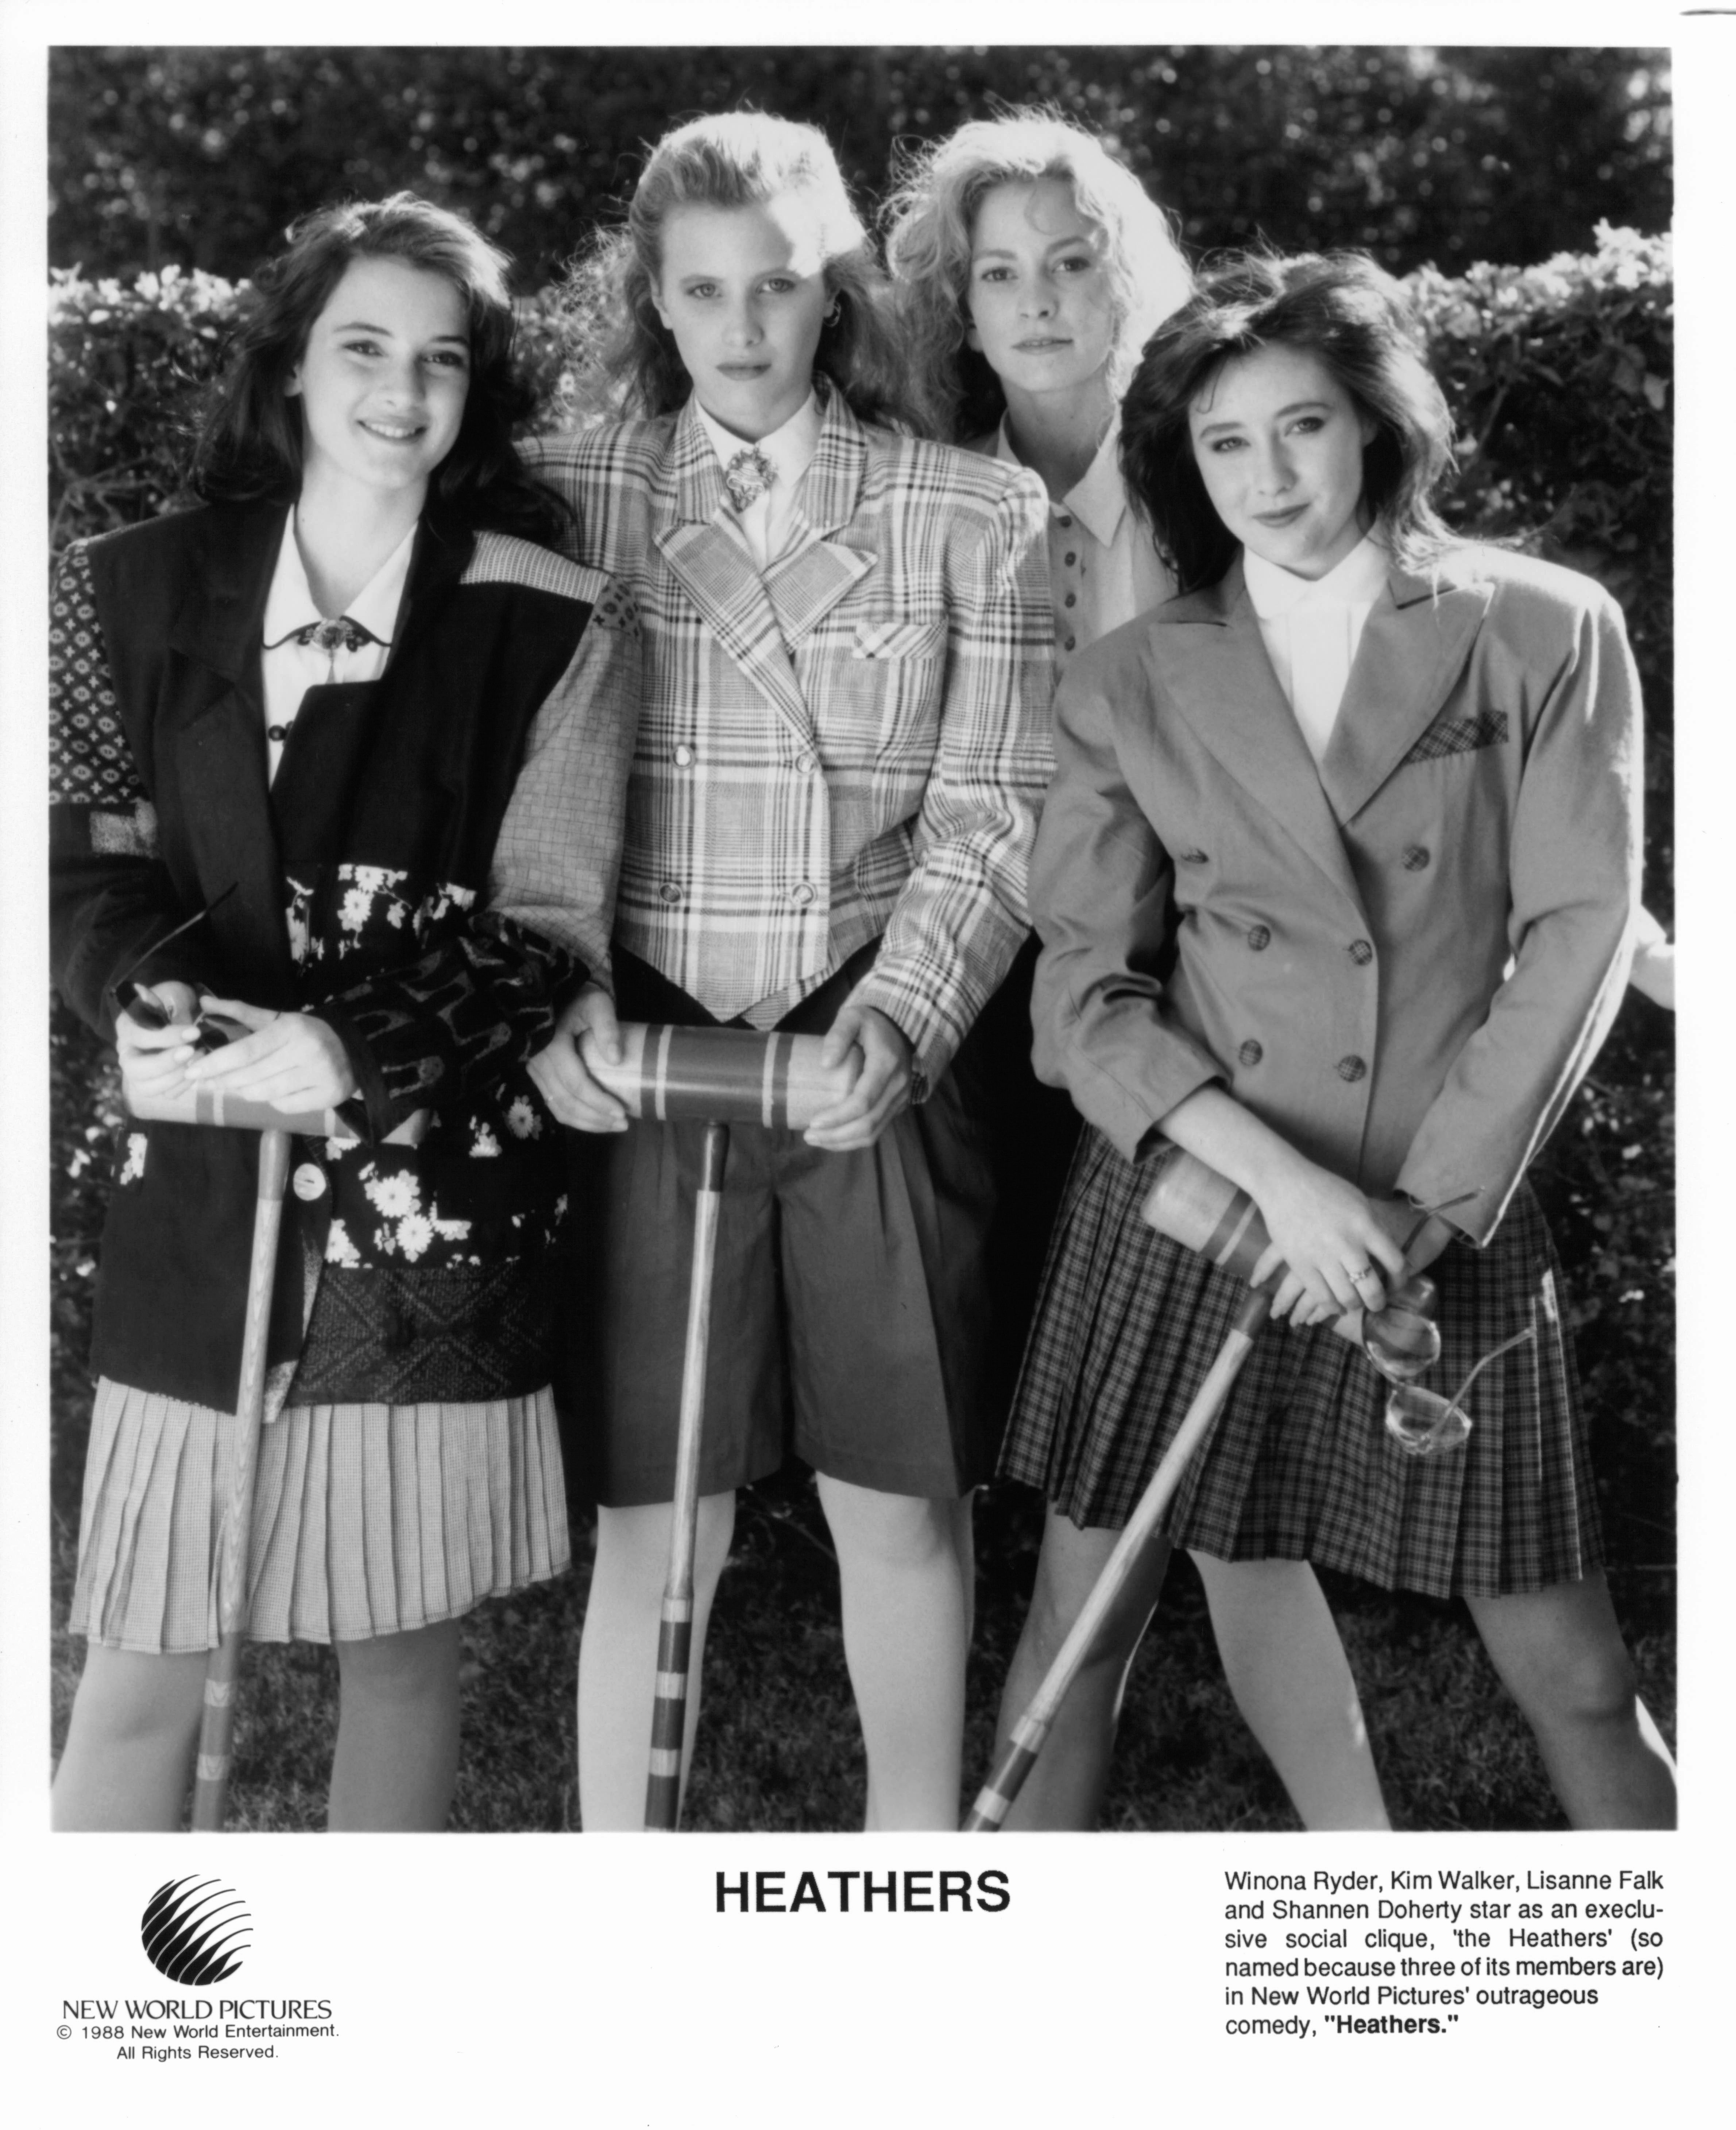 Winona Ryder, Kim Walker, Lisanne Falk, and Shannen Doherty are members of an exclusive social clique in a scene from the film 'Heathers', 1988. (Photo by New World Pictures/Getty Images)